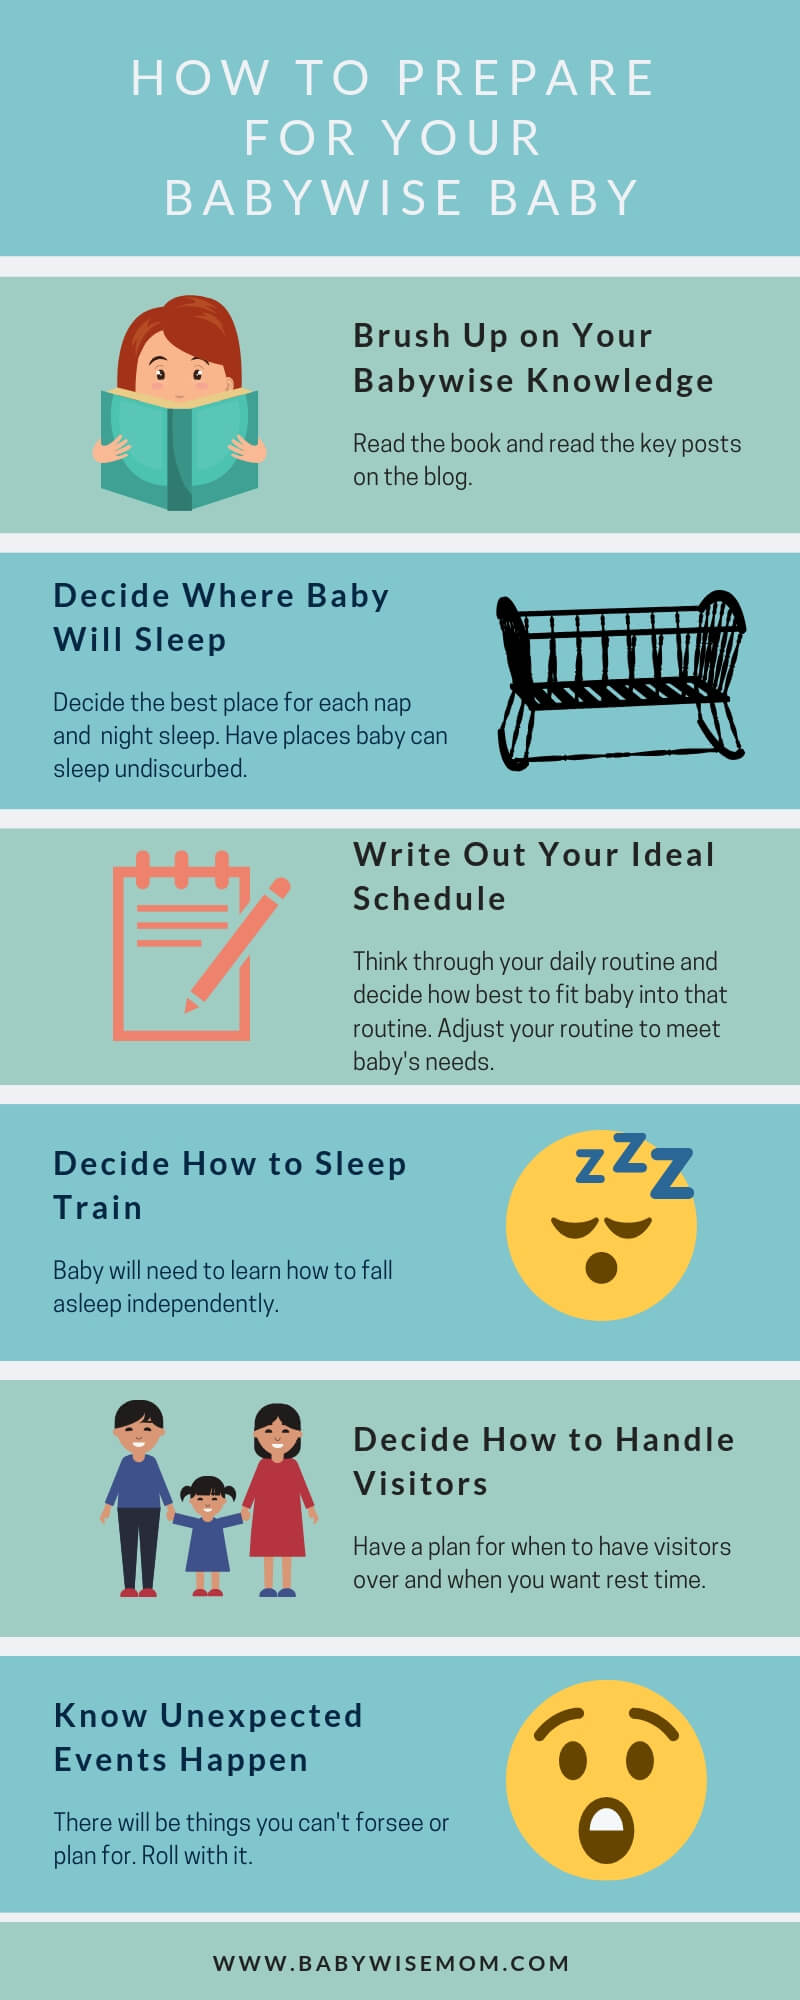 How to prepare for your Babywise Baby infographic